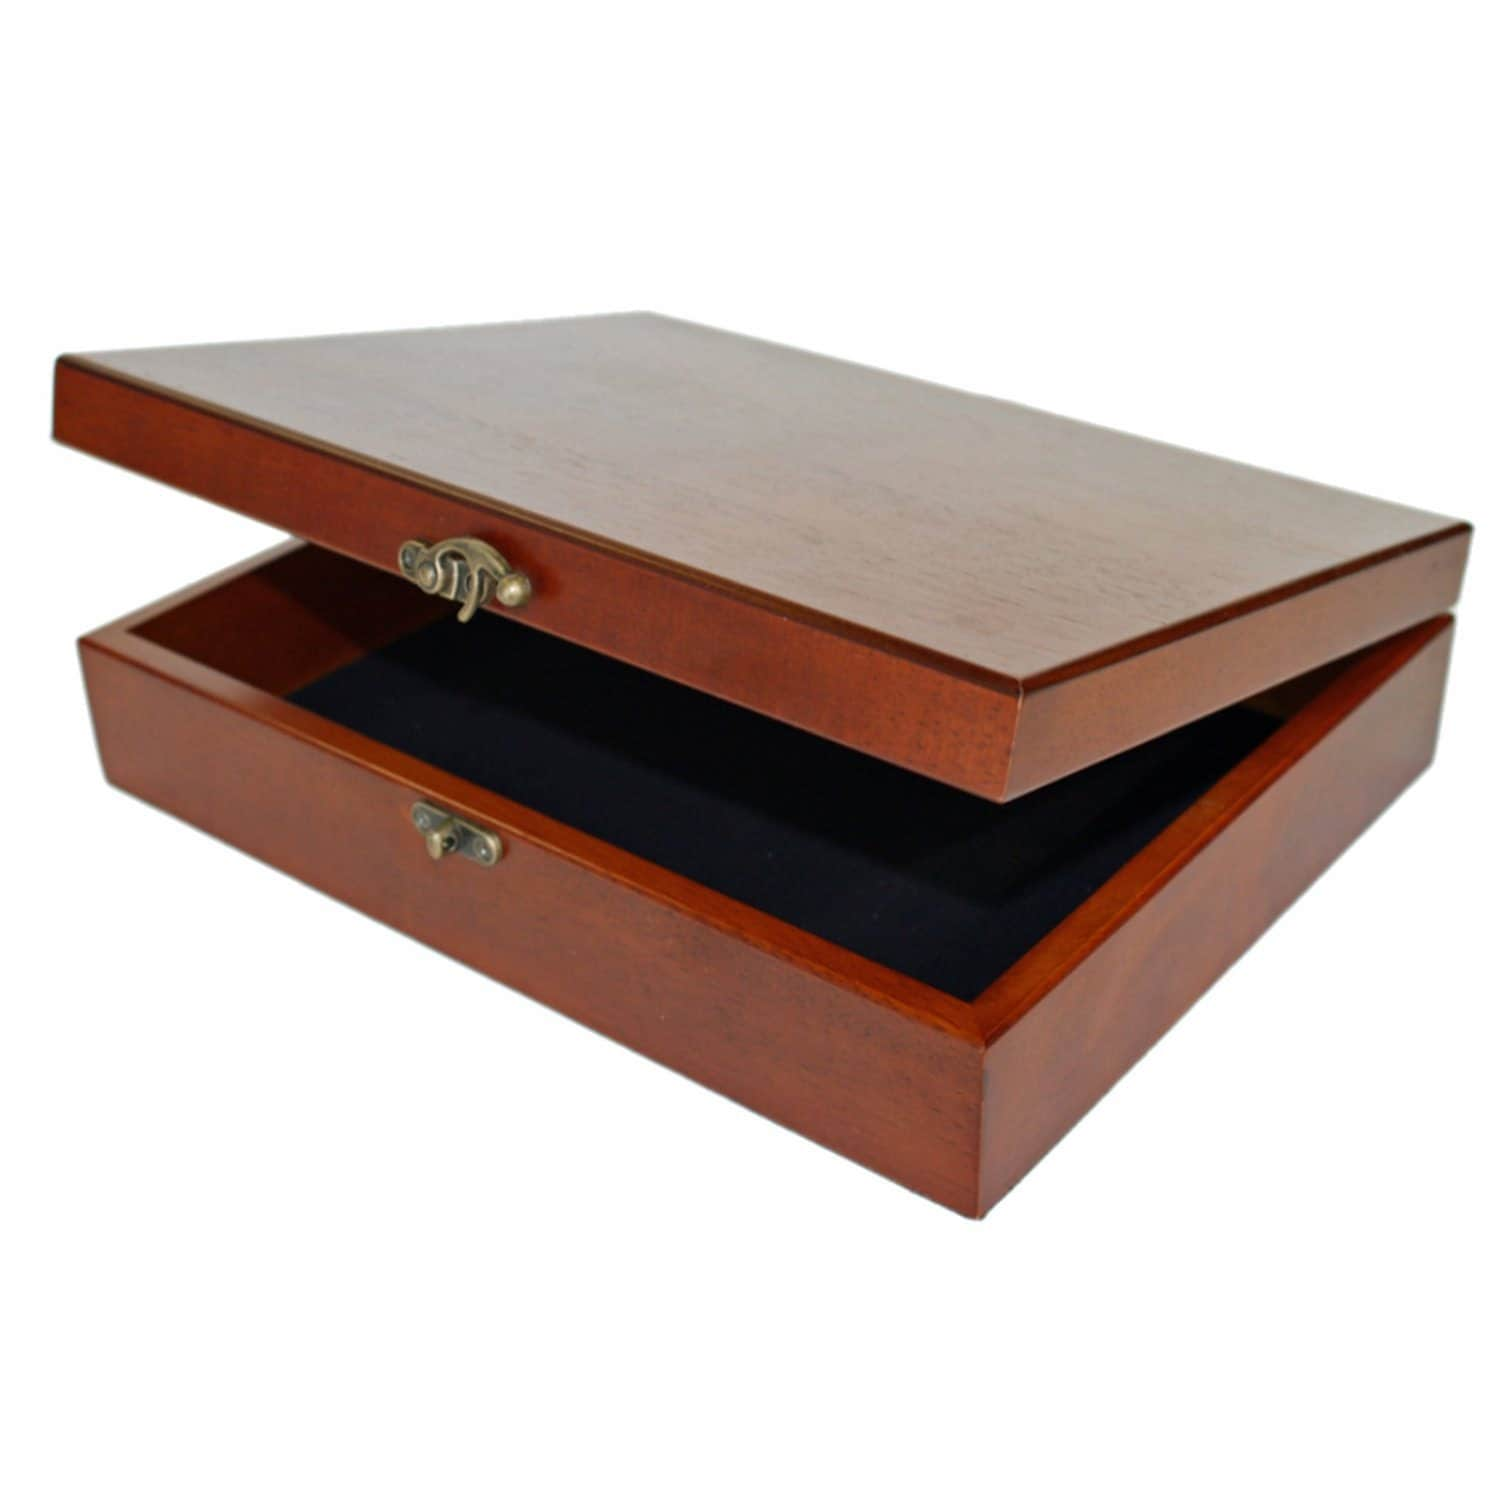 Amazon Small Decorative Boxes: Wood Pencil Case Wooden Pencil Box With Brass Latch Vintage